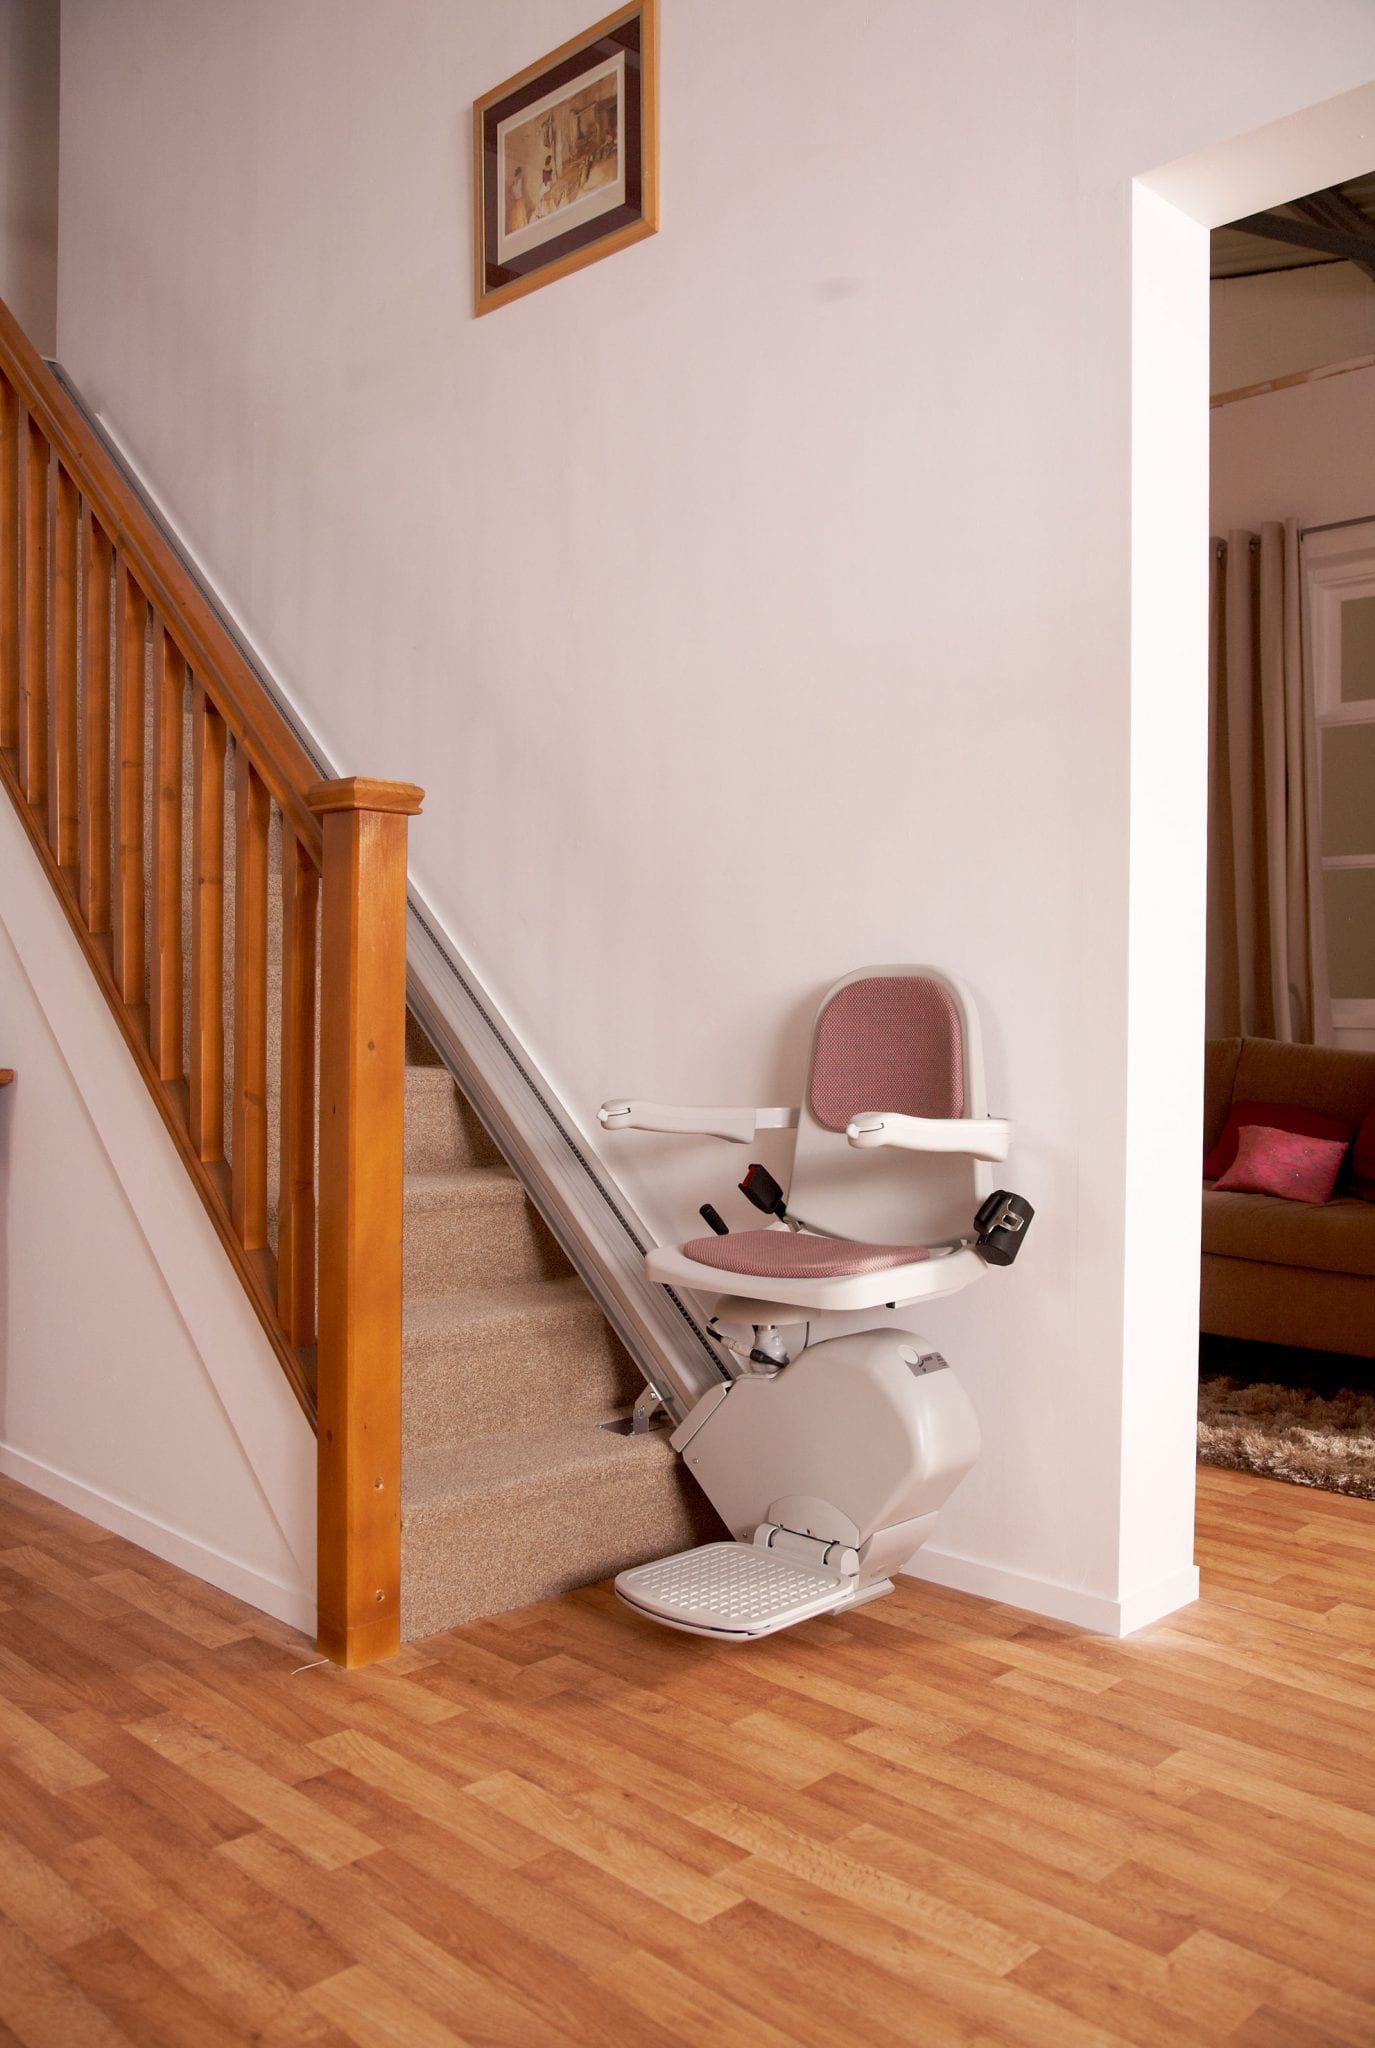 HOW A STAIRLIFT CAN IMPROVE YOUR LIFE AT HOME